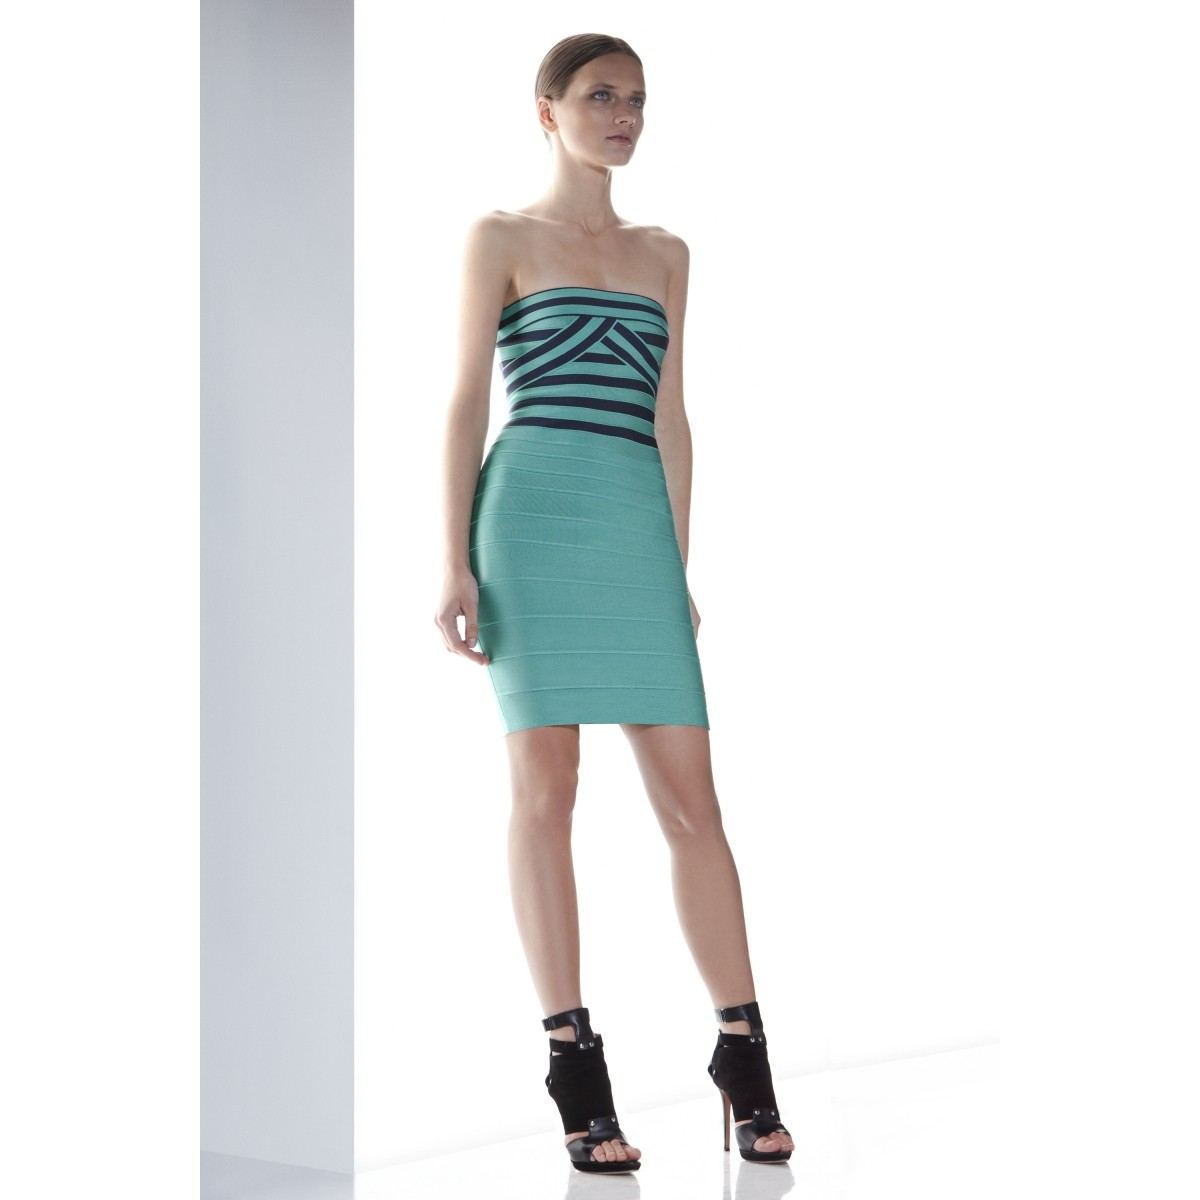 Herve Leger Olimpia Jacquard Stripe Dress